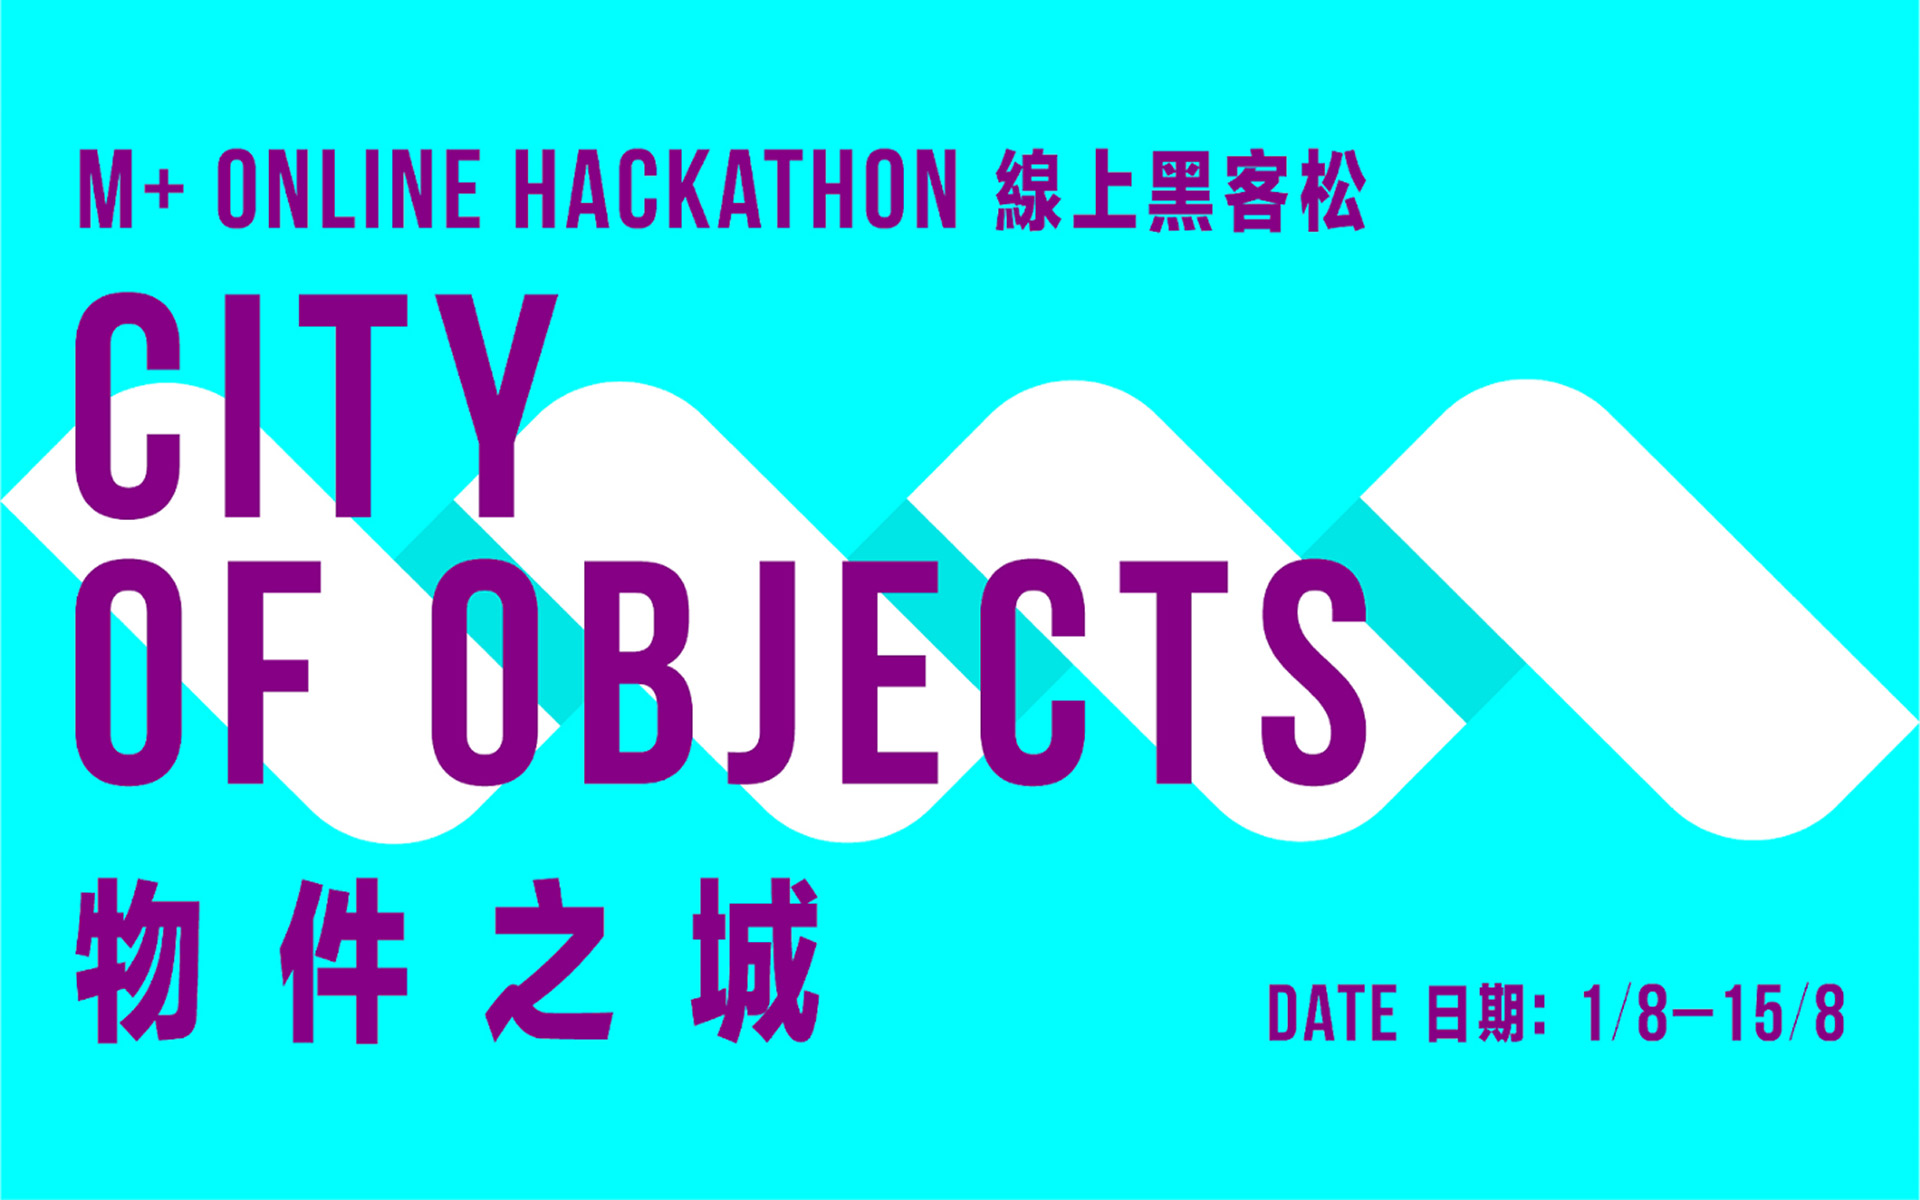 Schema's Christian Marc Schmidt Co-leads M+ Online Hackathon—City of Objects